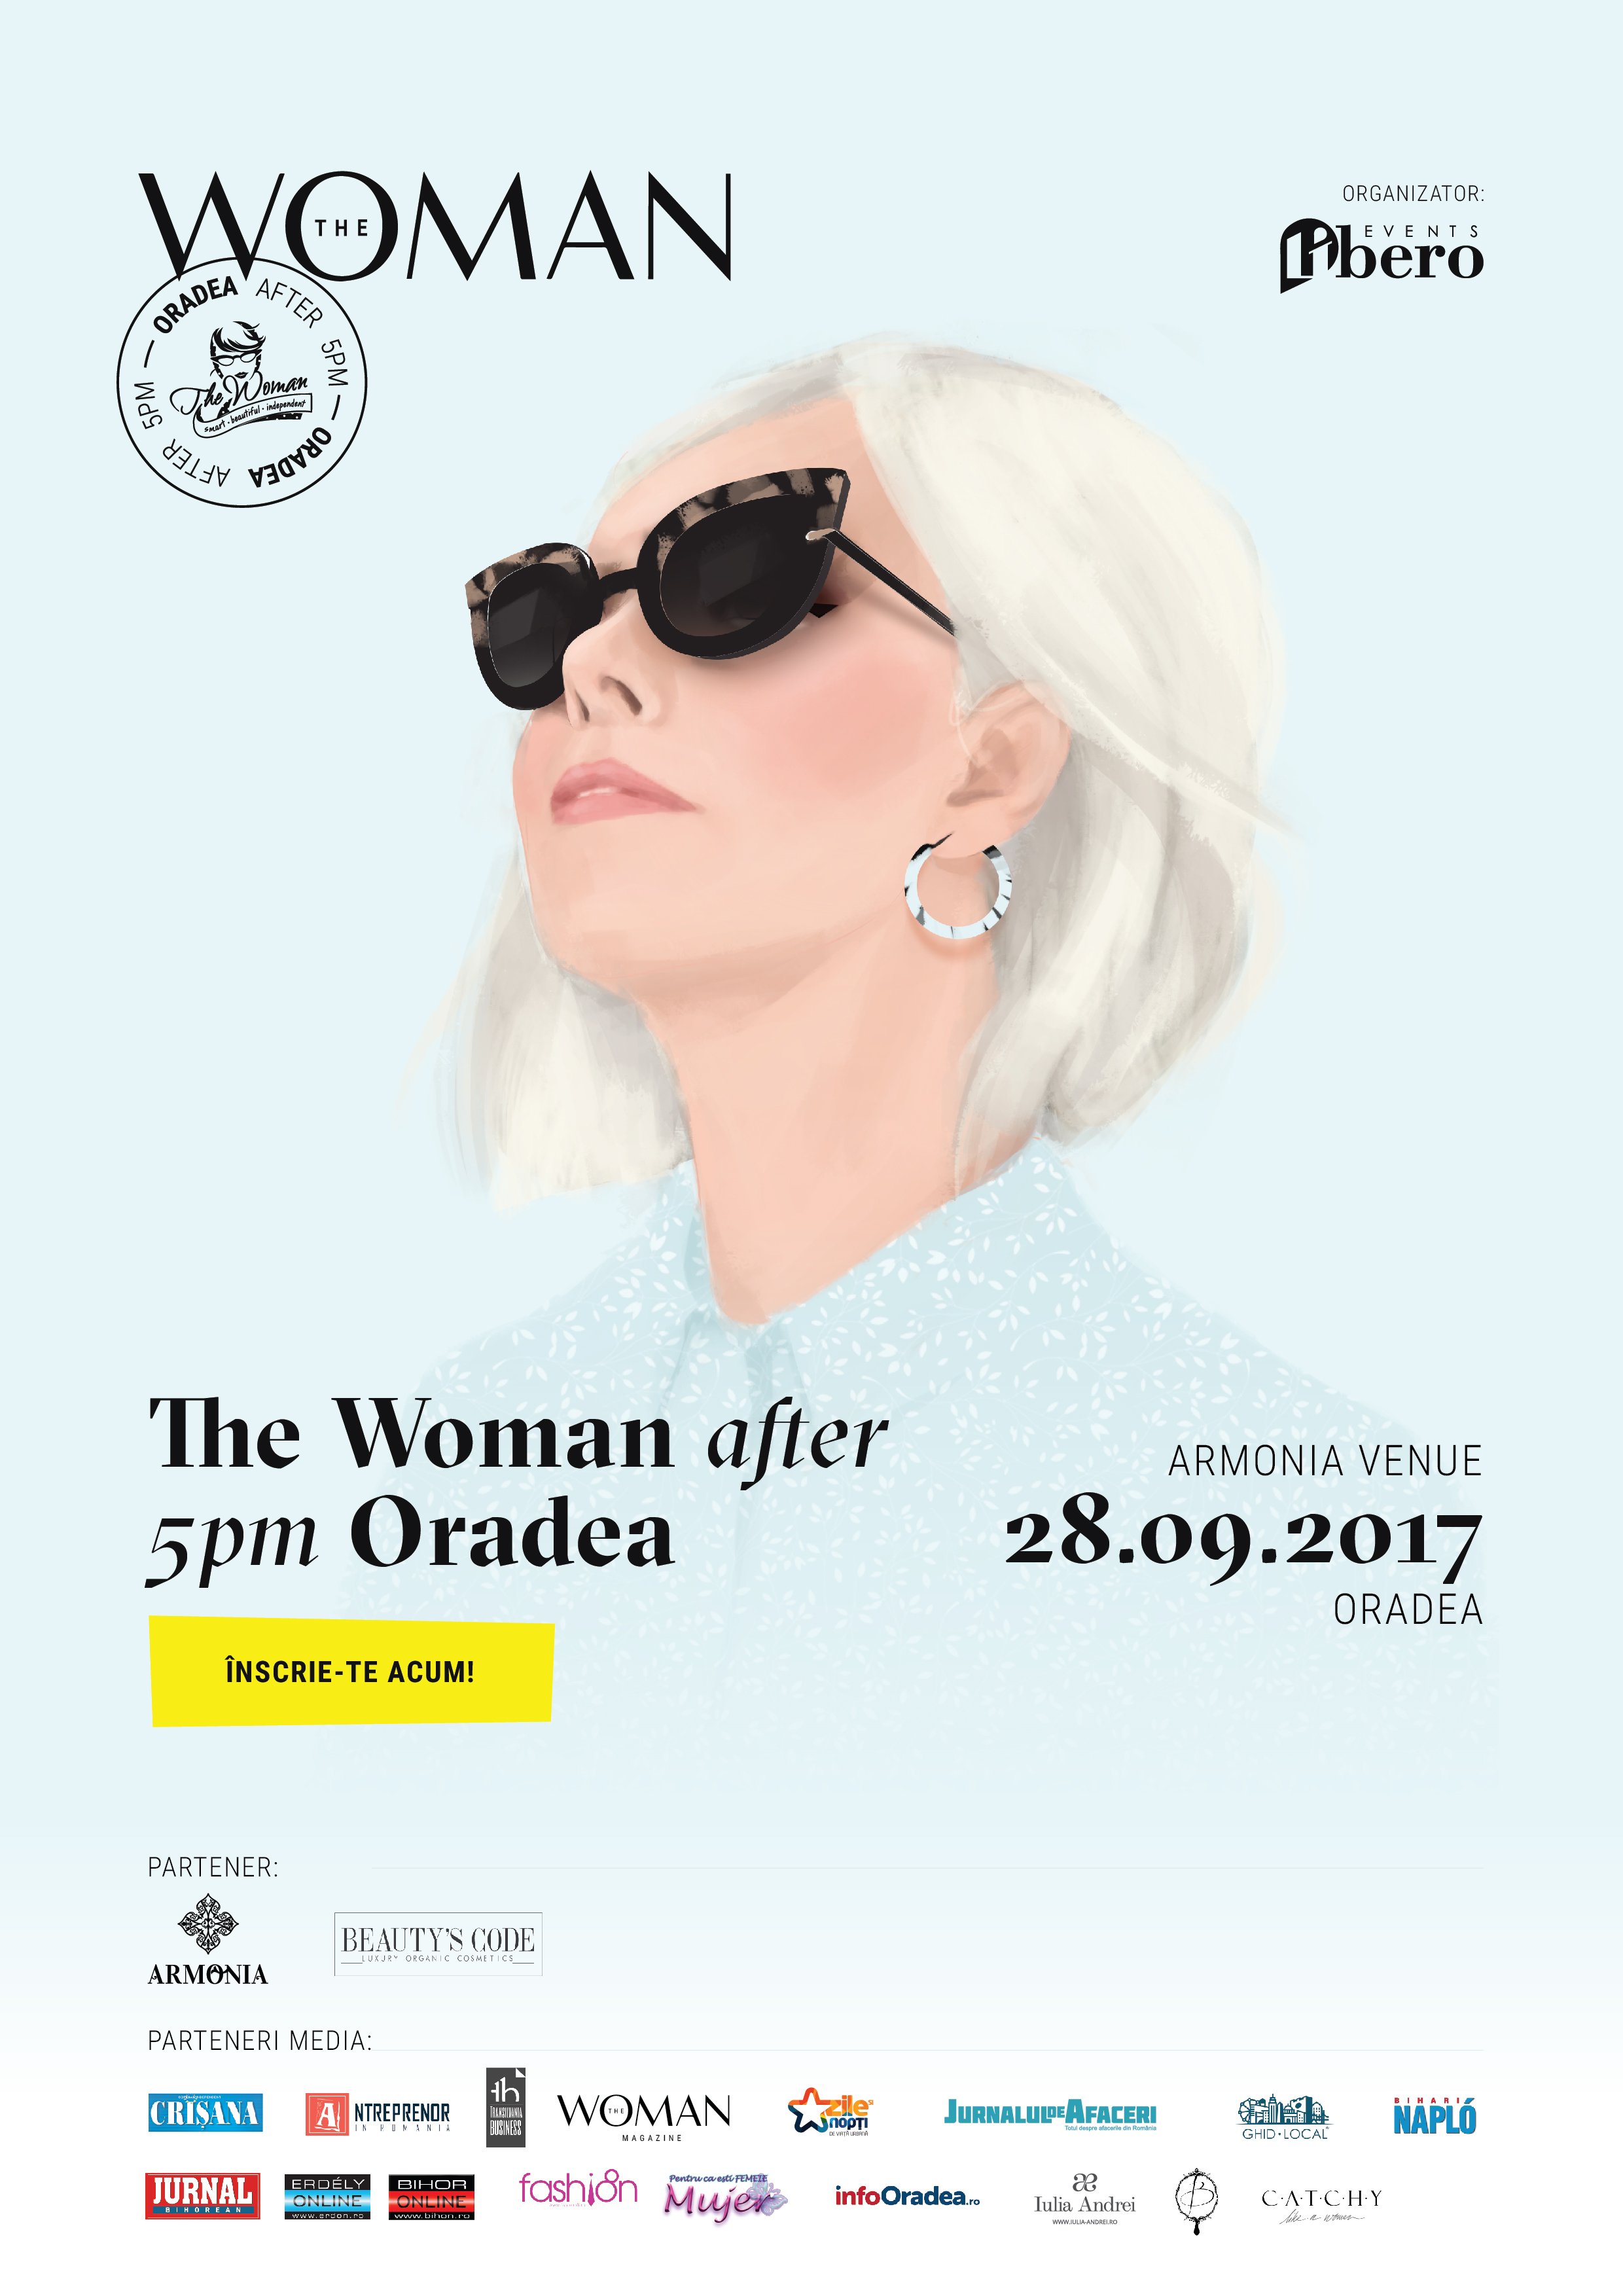 The Woman after 5pm! Oradea A